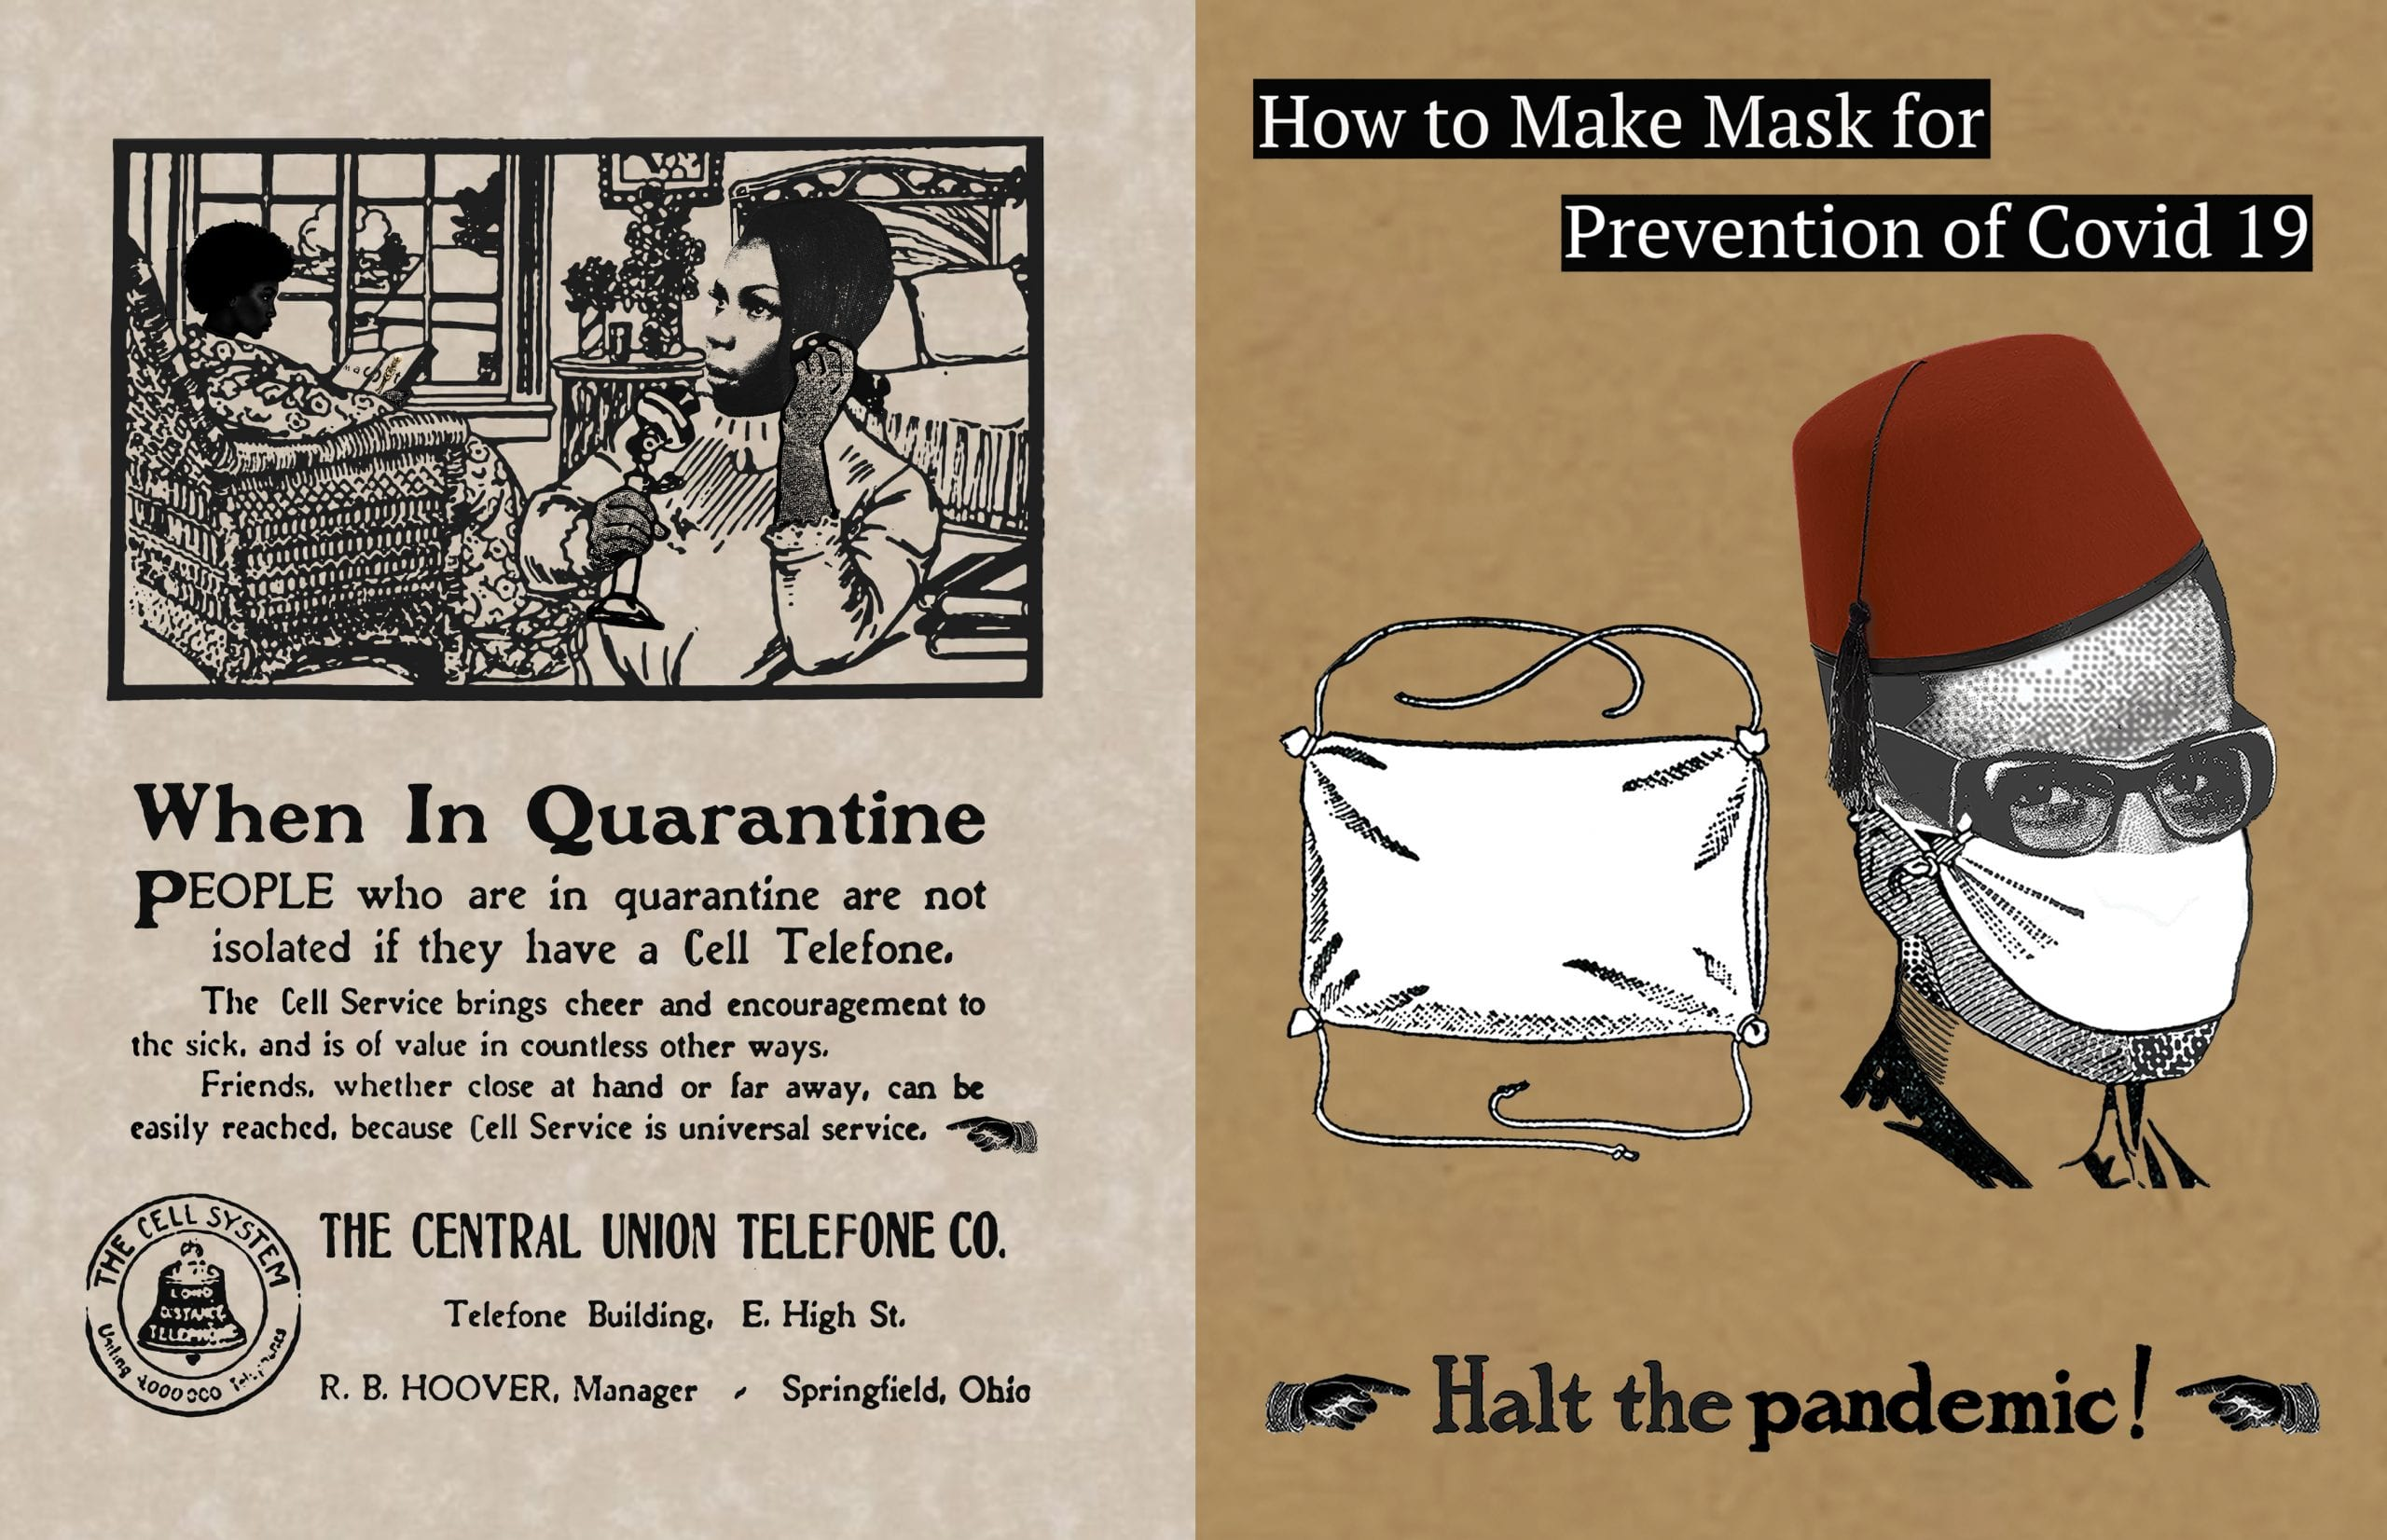 """Collaged artwork that visually connects the current pandemic to the 1918 flu pandemic: on left, an old-fashioned ad for telephones, remixed to advertise the usefulness of cell phones during the novel coronavirus pandemic; the right similarly similarly shows a vintage ad with a man in fez hat and face mask, reading """"Halt the Pandemic!"""""""